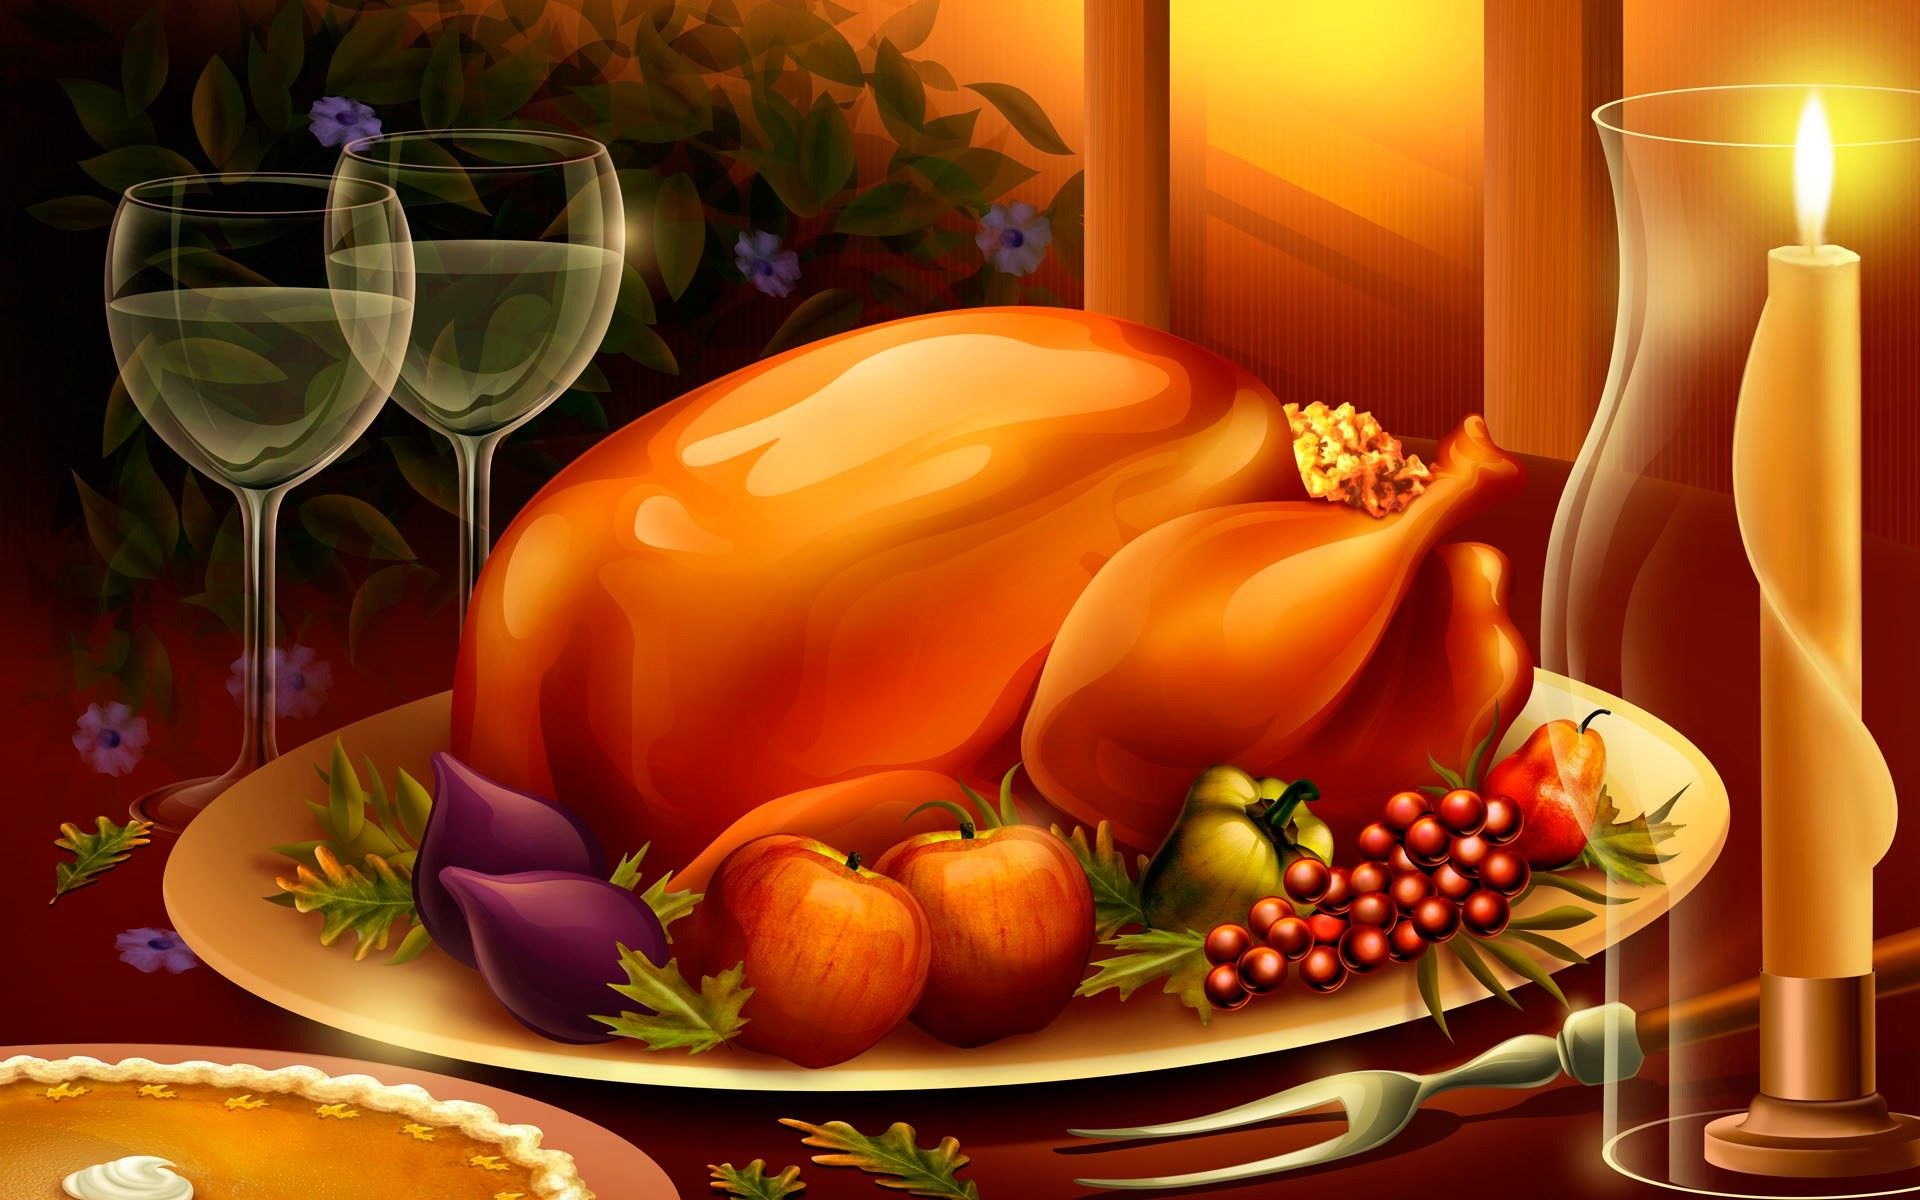 1920x1200 thanksgiving free desktop backgrounds for winter